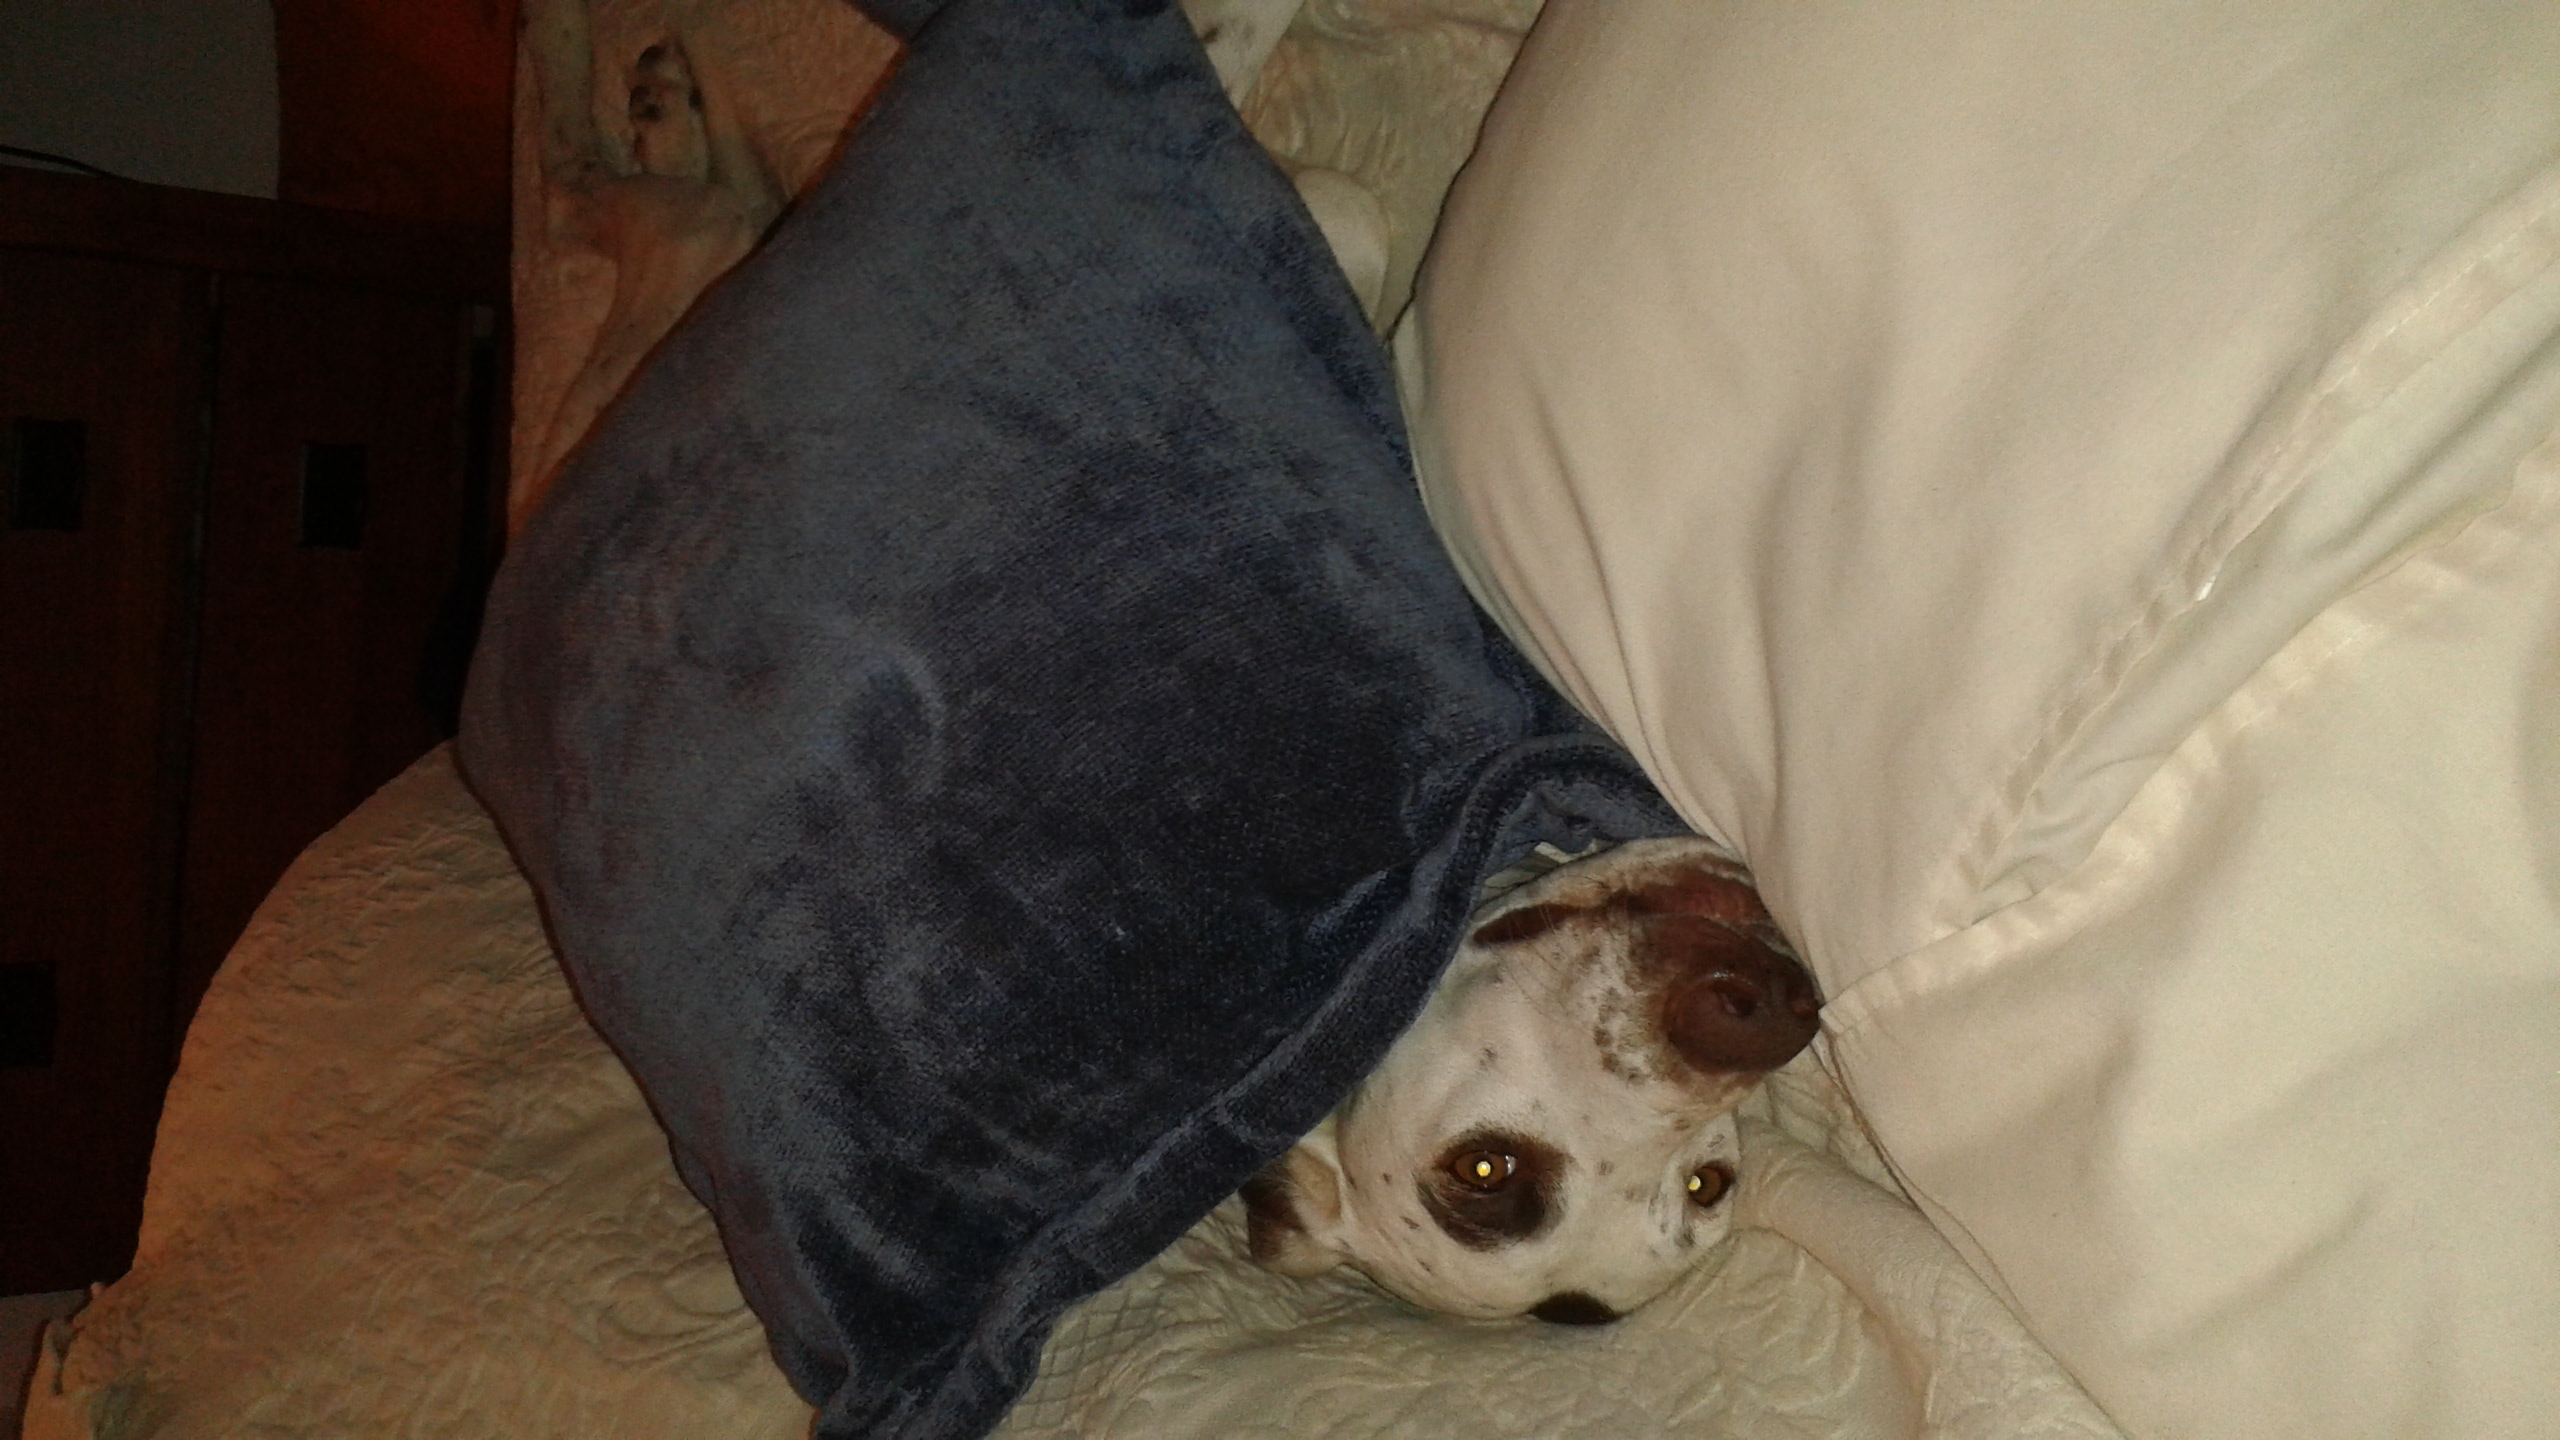 Dog Hannah under pillows